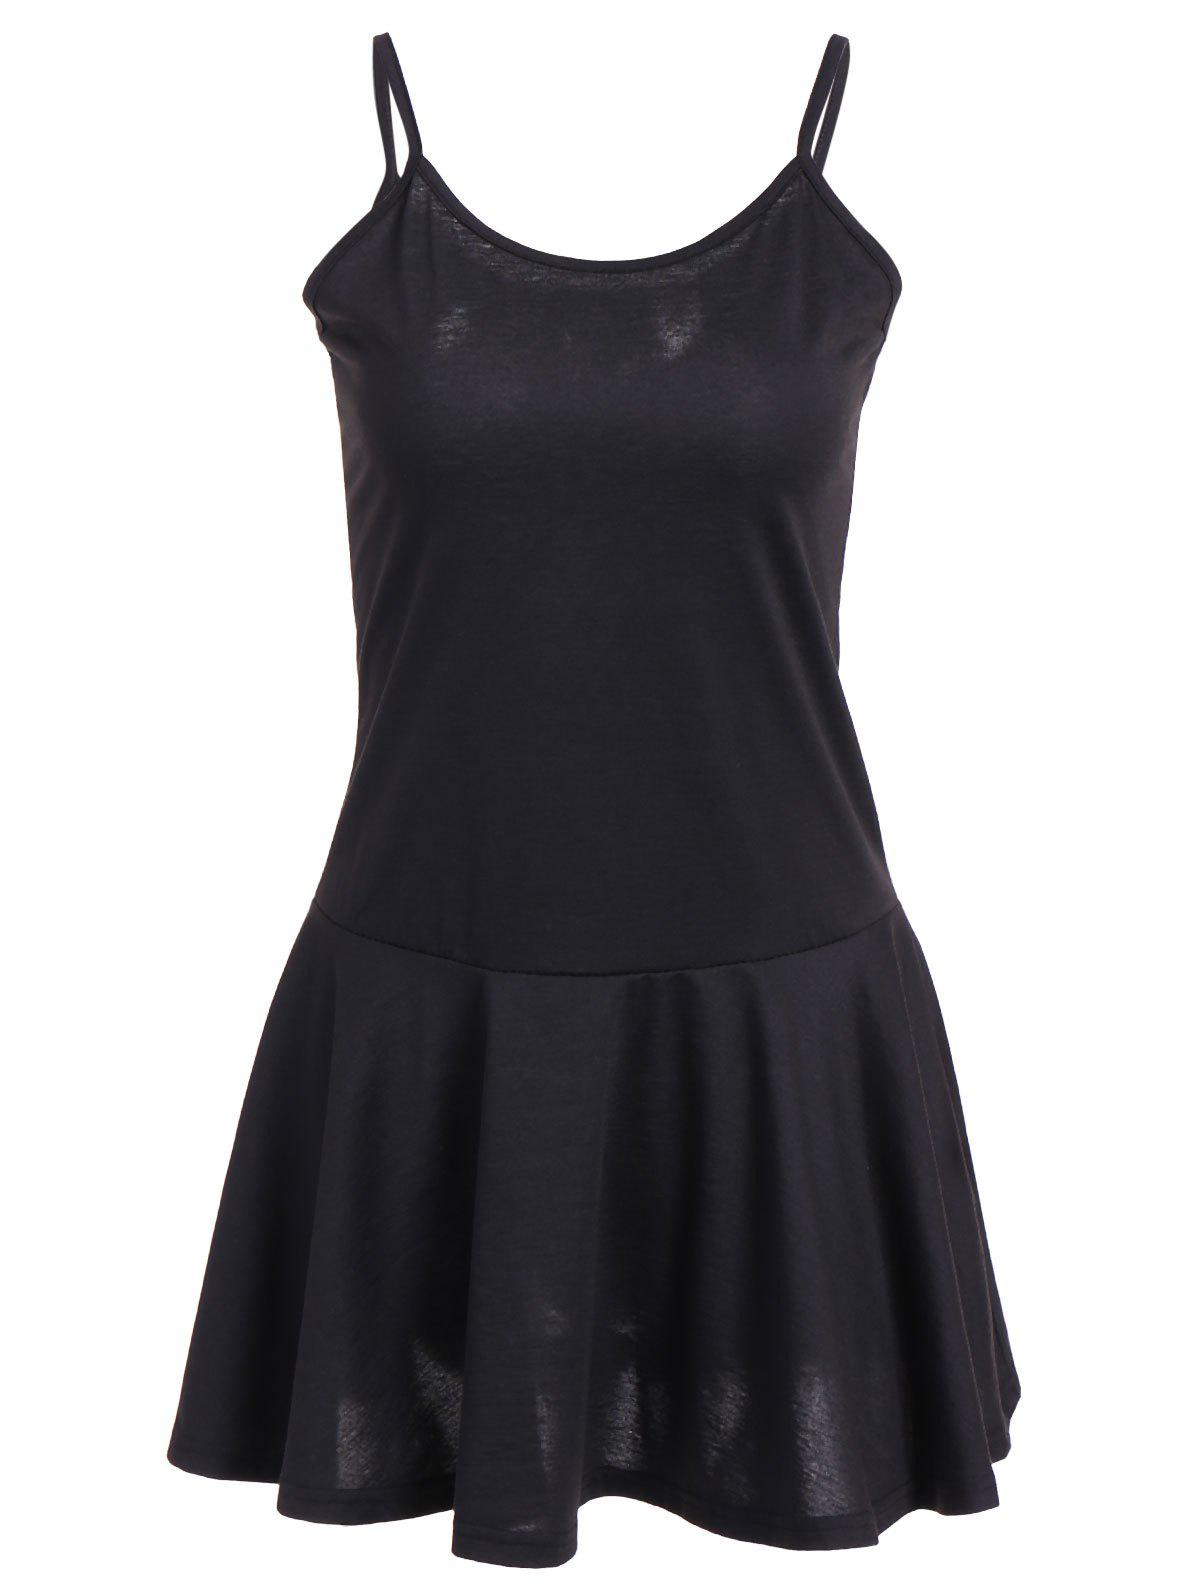 Ruffle Hem Cami DressWomen<br><br><br>Size: XL<br>Color: BLACK